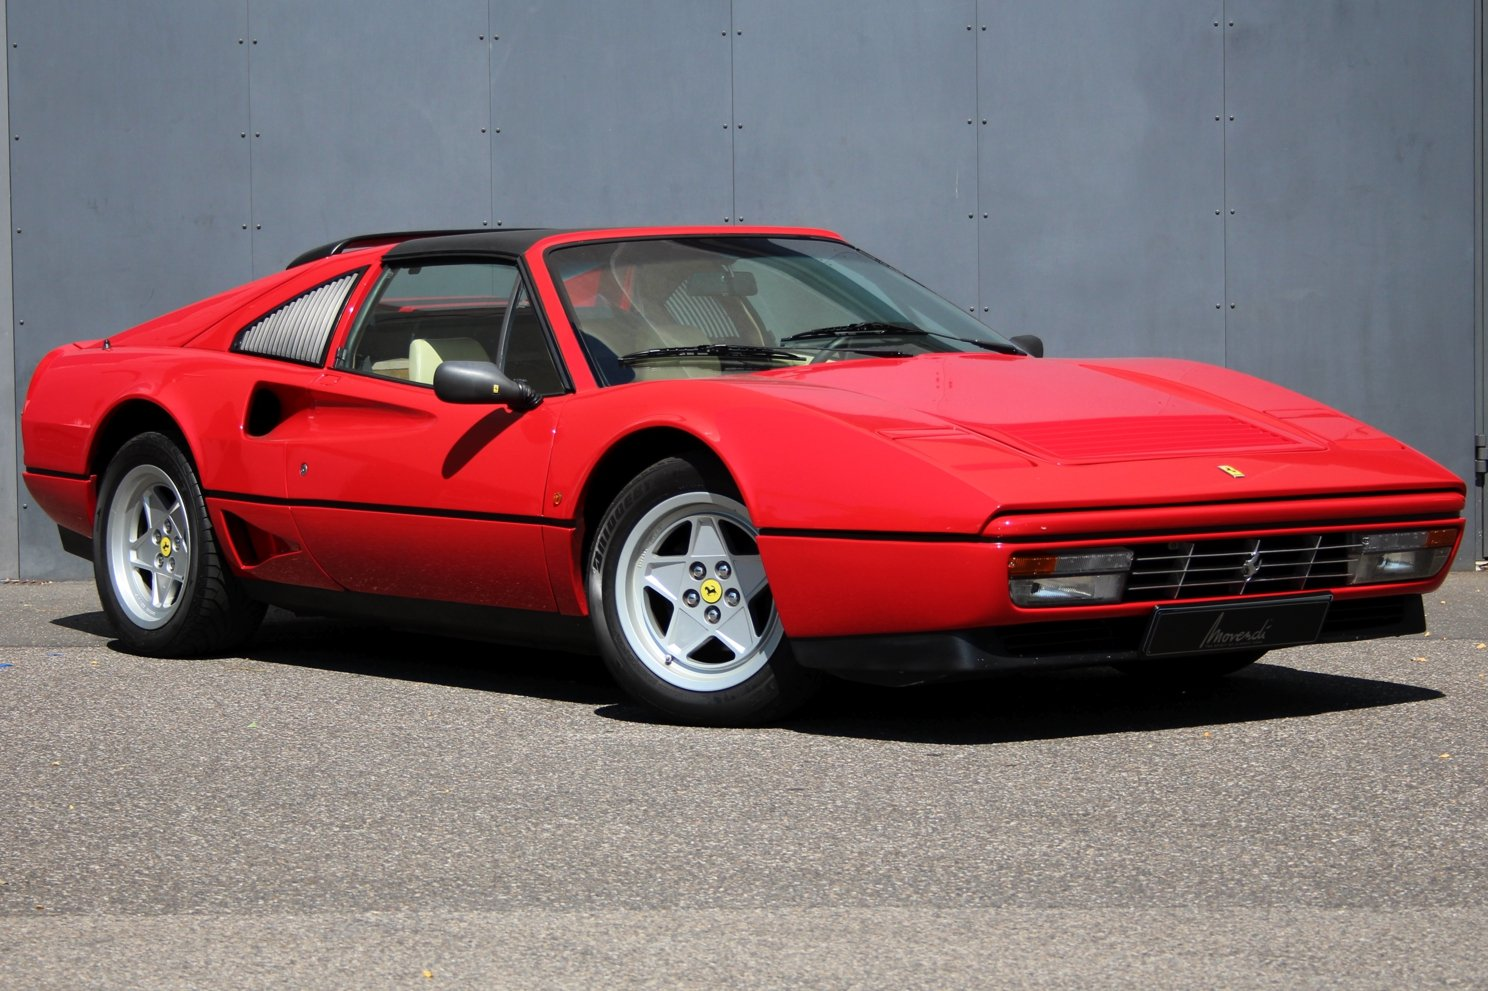 1986 Ferrari 208 GTB Turbo LHD For Sale (picture 1 of 6)